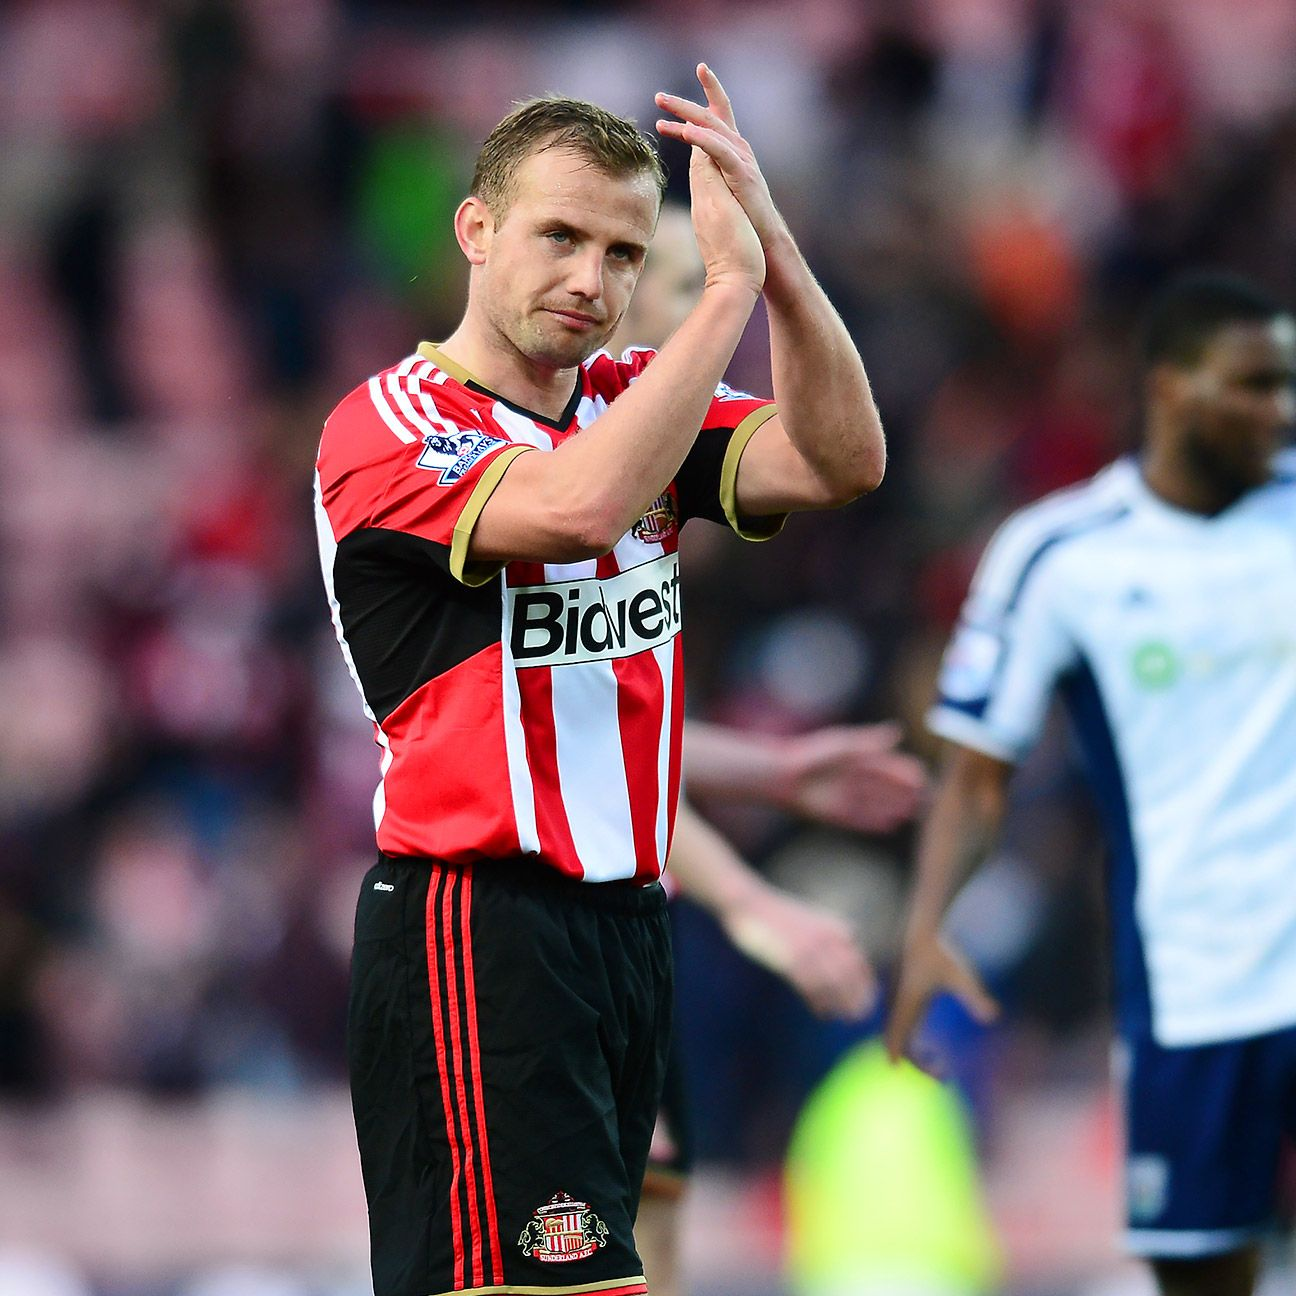 Lee Cattermole and Sunderland had to settle for their 13th draw of the season in Saturday's 0-0 final versus West Brom.